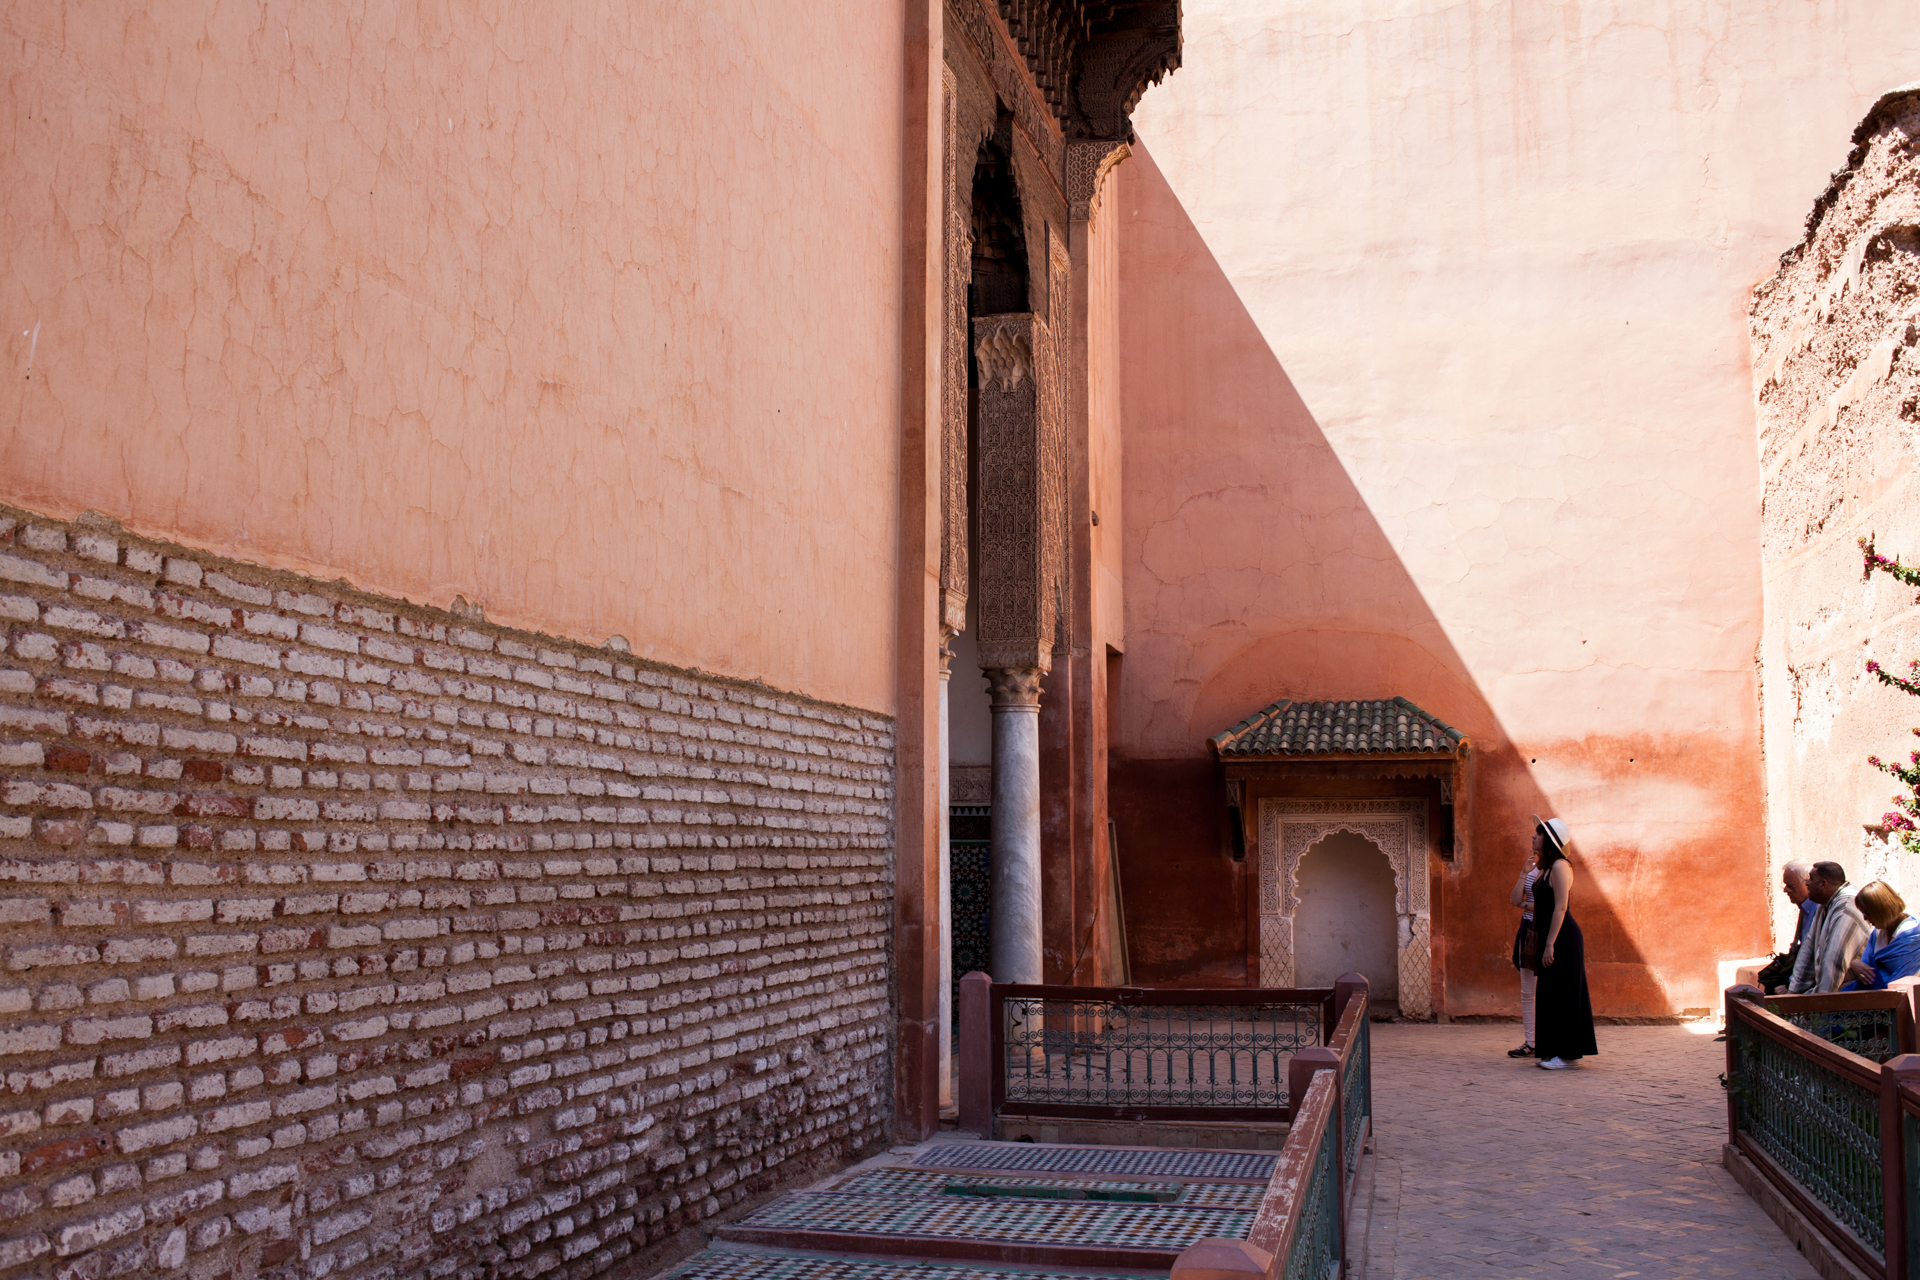 Morocco_April15__by_kingmouf-590